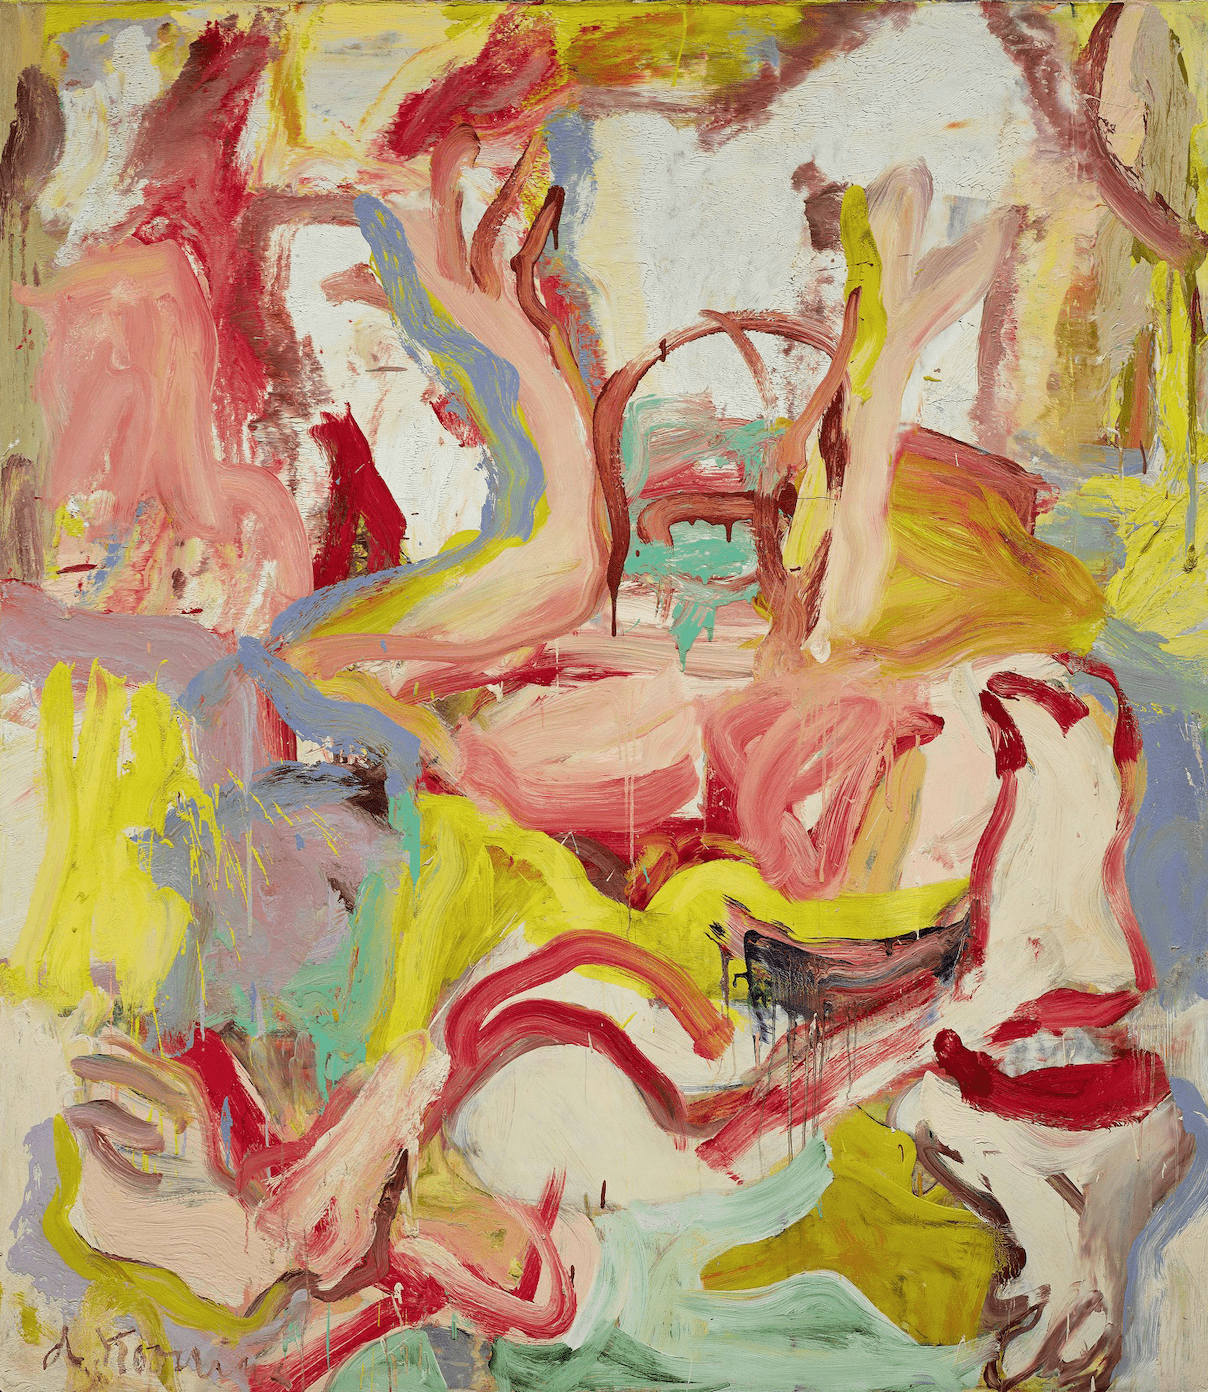 An abstract work by Willem de Kooning.